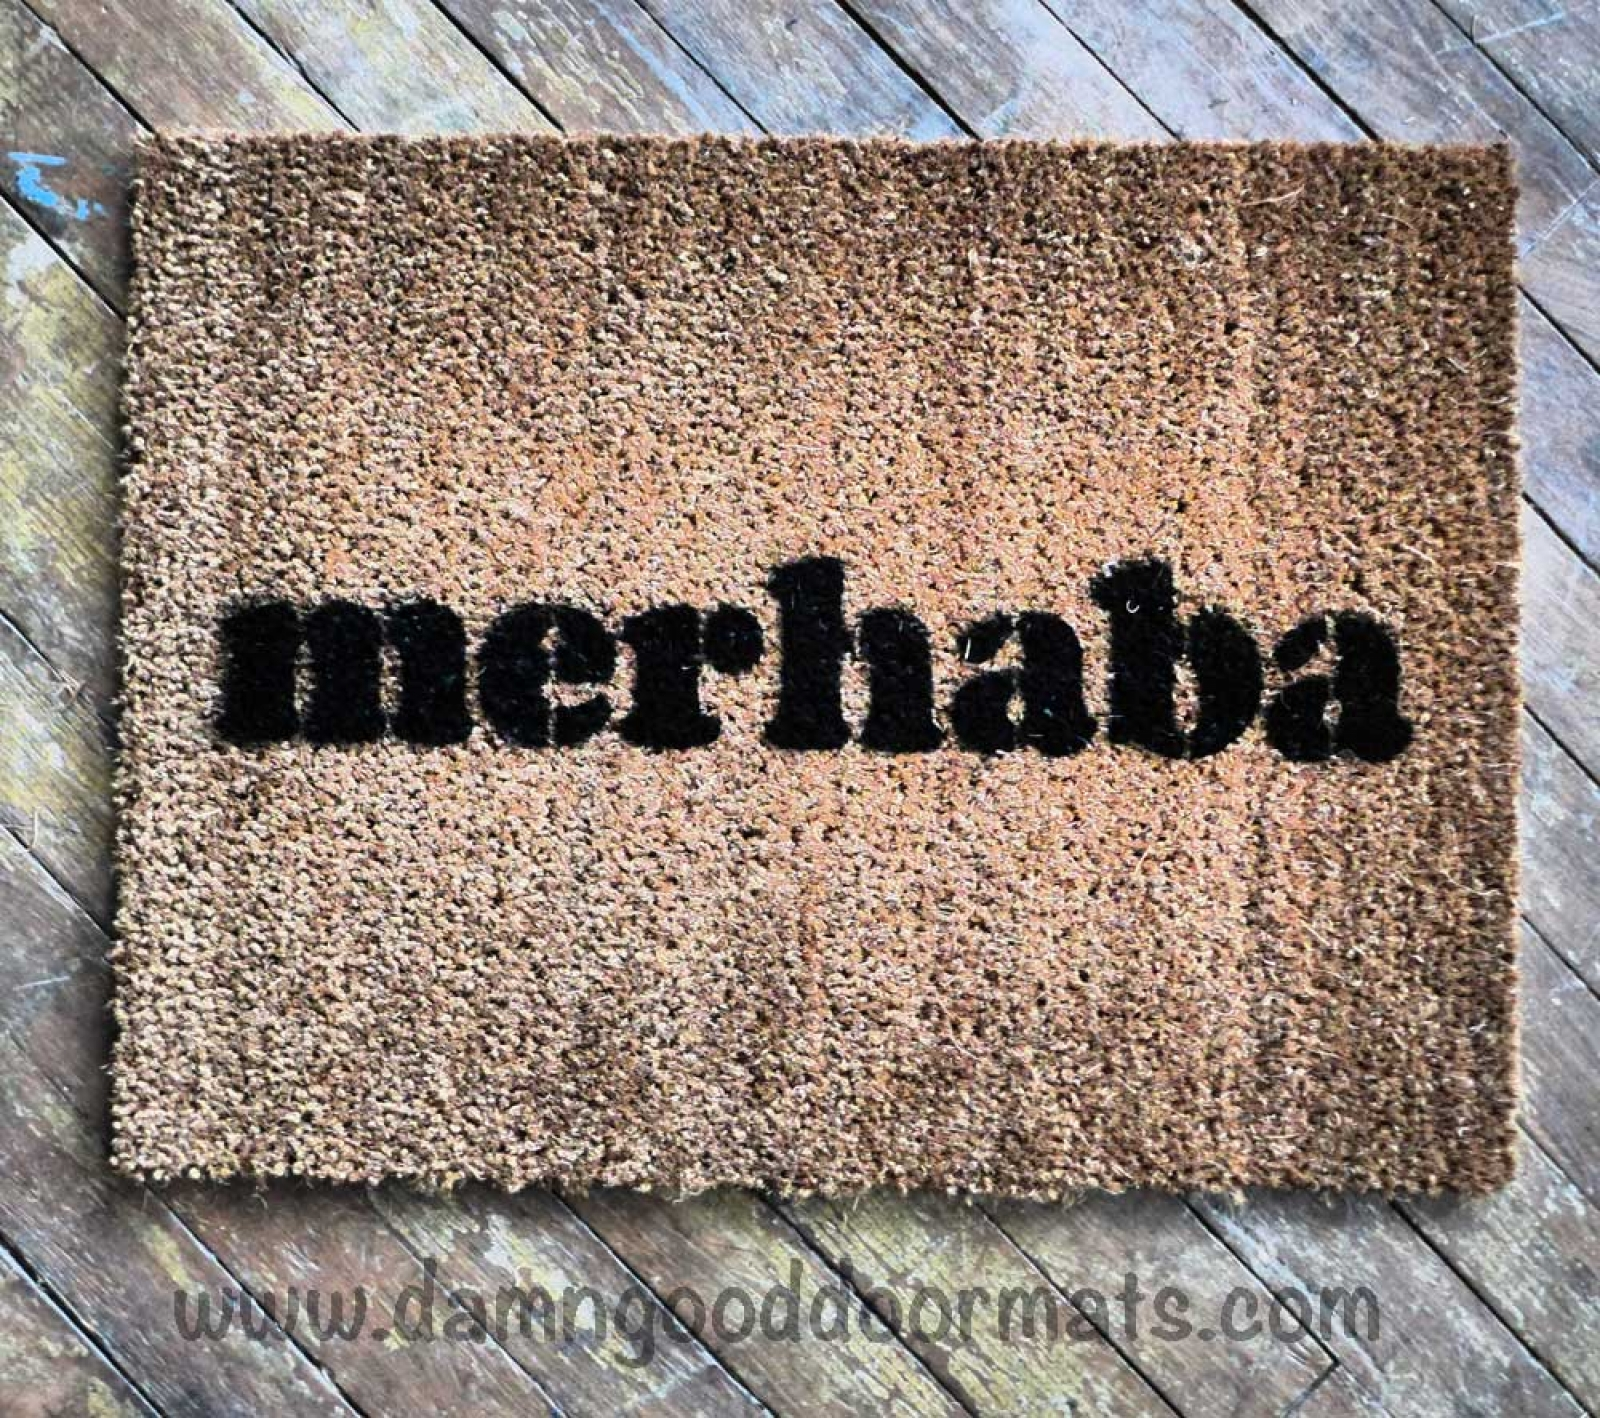 Turkish Merhaba Welcome Mat Damn Good Doormats